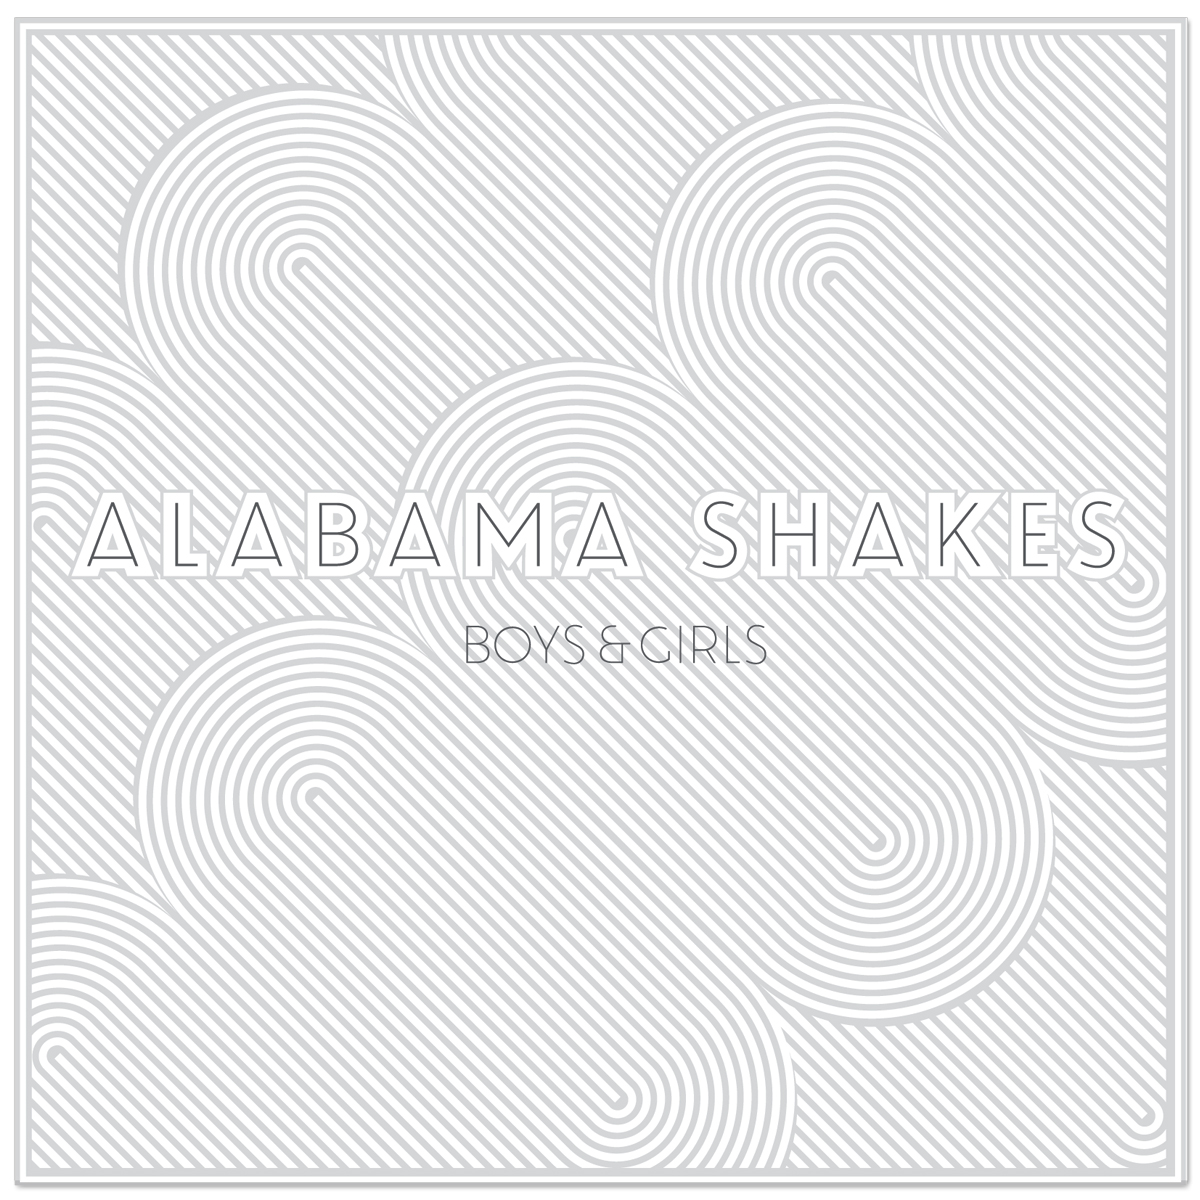 Alabama Shakes - Boys & Girls Digital Download